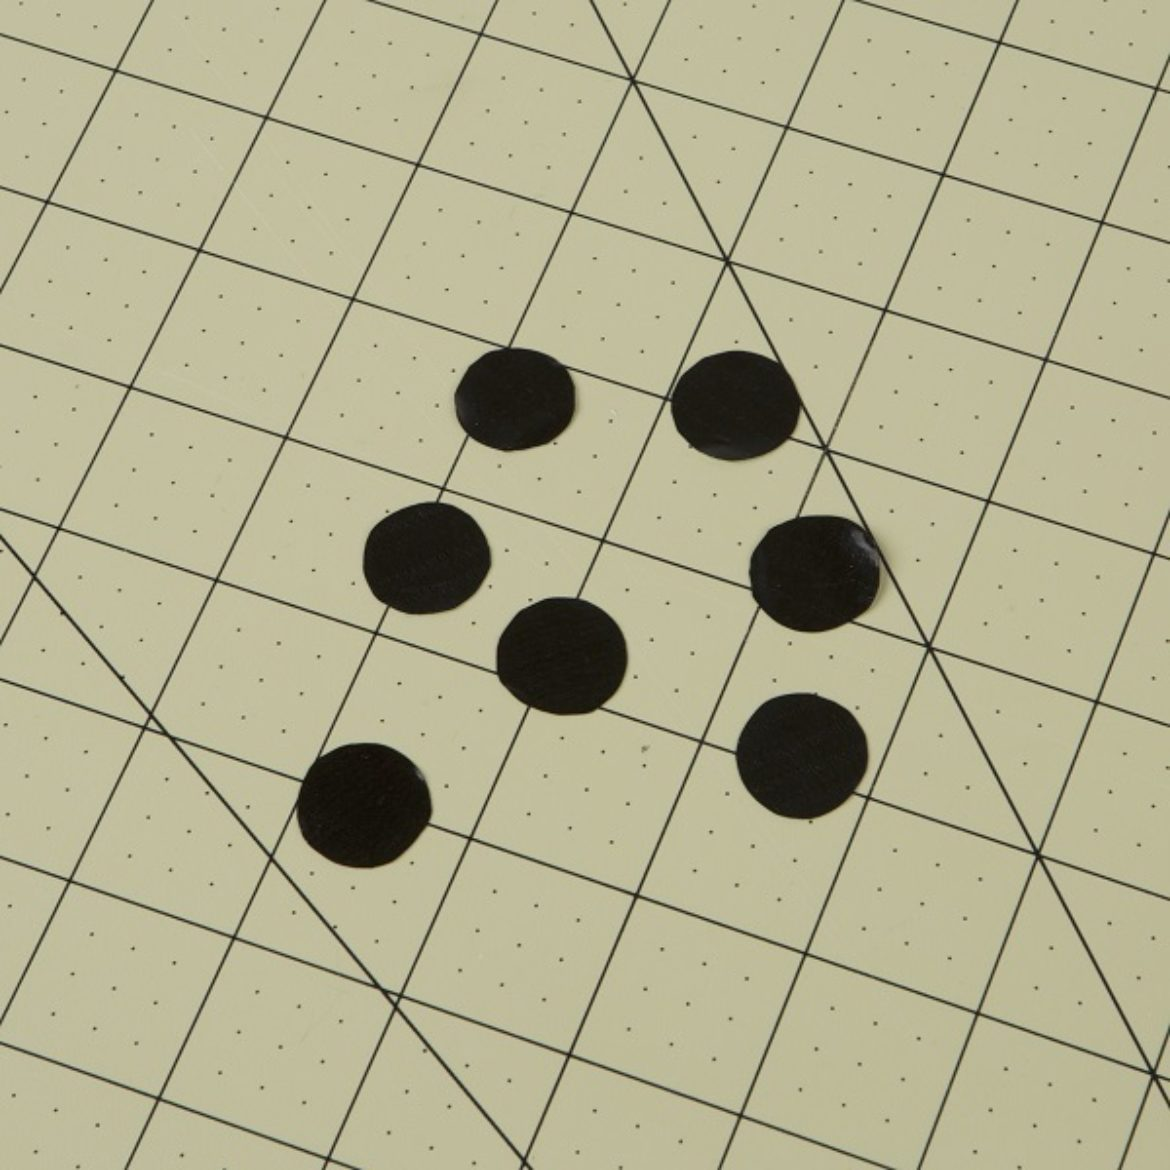 Small circles the size of a coin cut out of a Duck Tape Sheet